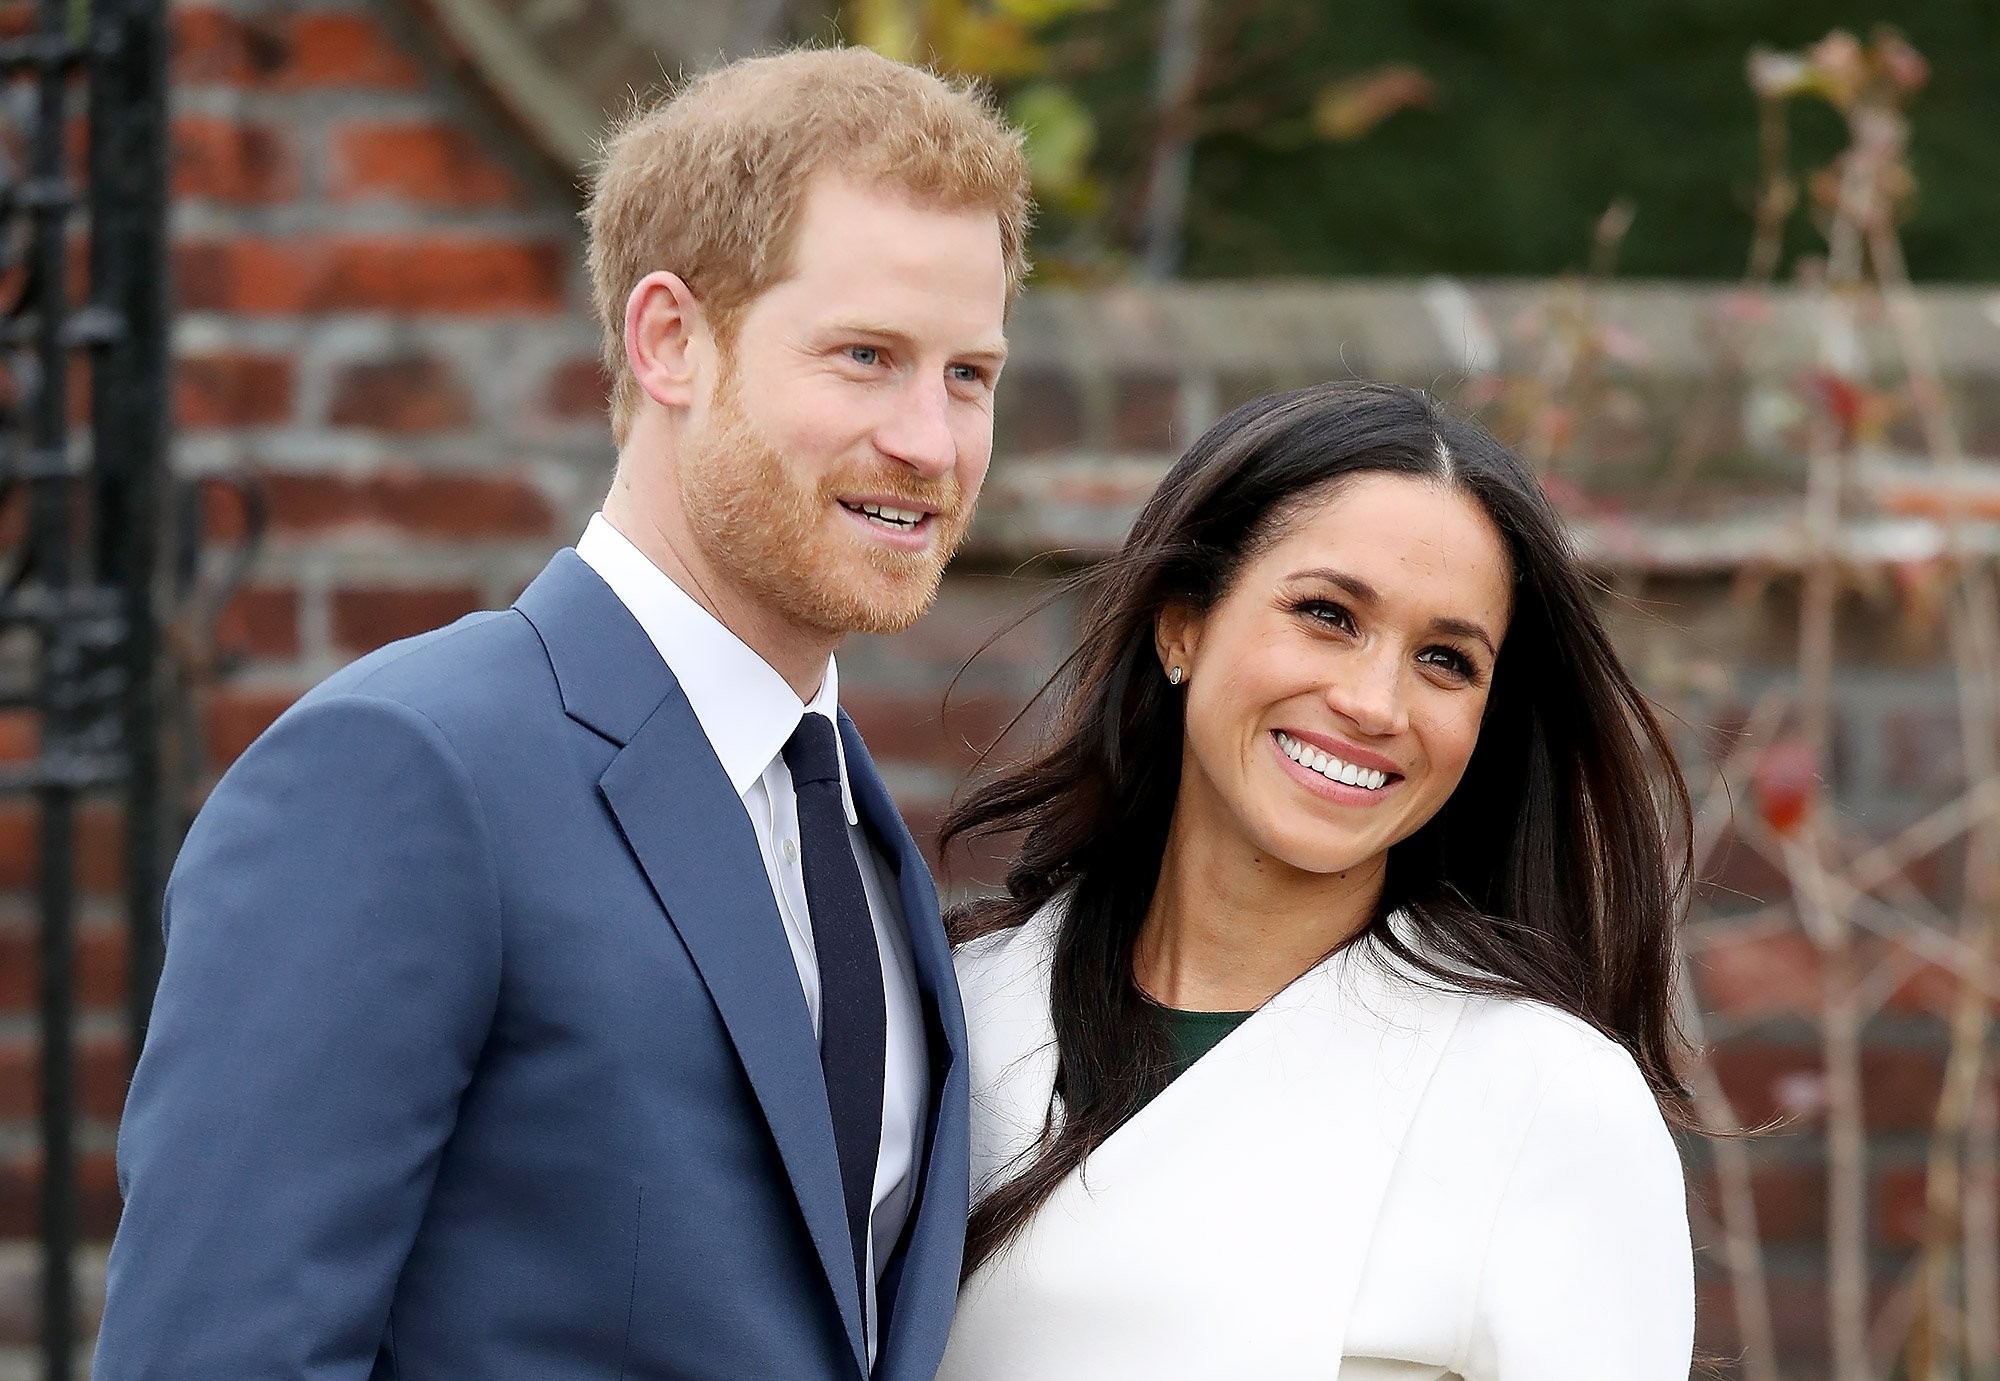 harry meghan 17 - News of a Royal Wedding: Prince Harry & American Meghan Markle to Wed in Spring